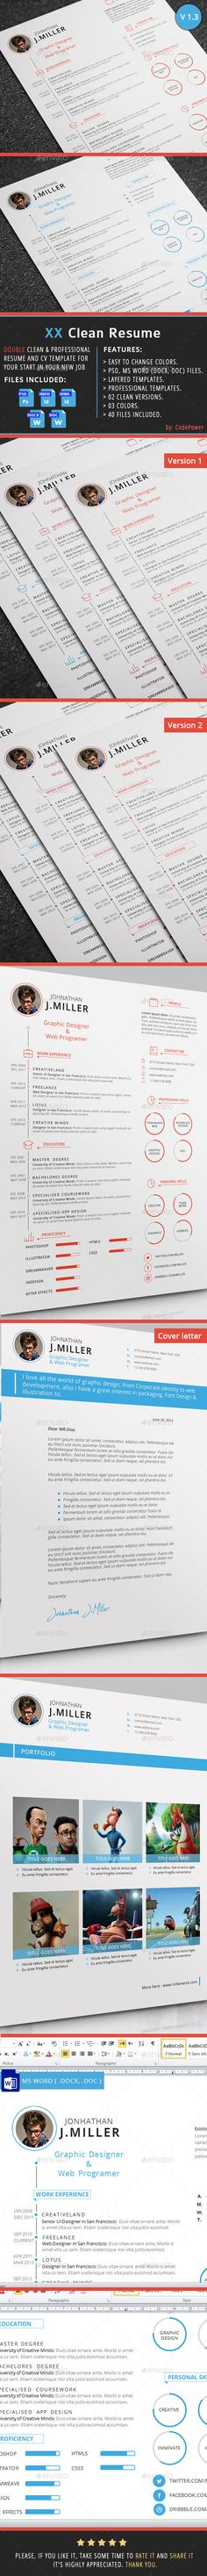 XX Clean Resume Template PSD. Download here: http://graphicriver.net/item/xx-clean-resume/7172985?s_rank=1772&ref=yinkira